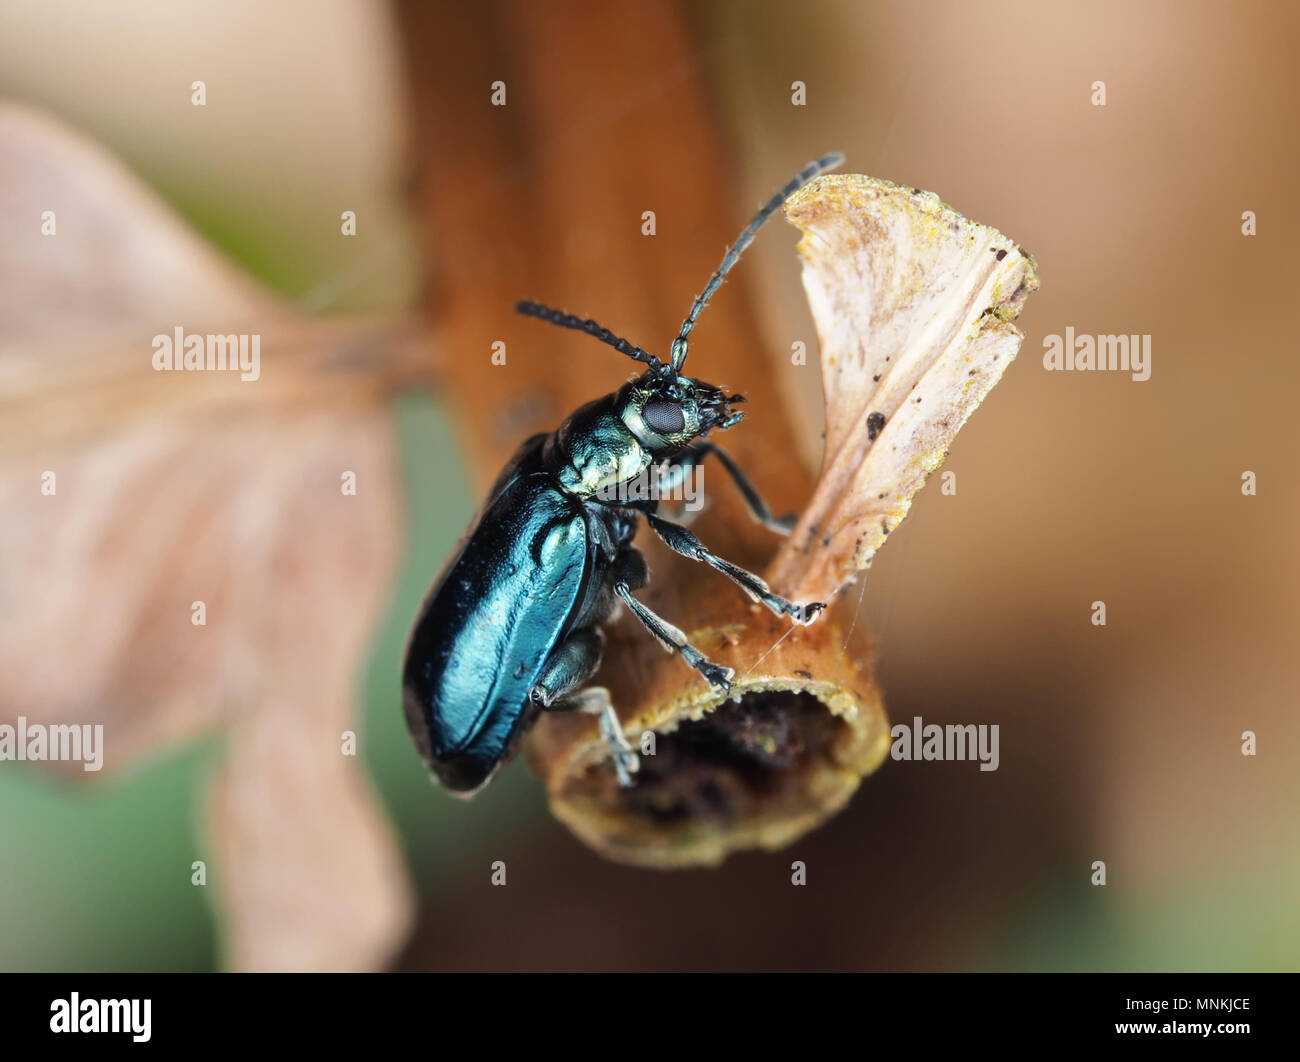 Altica sp. beetle on a dried plant, side view - Stock Image